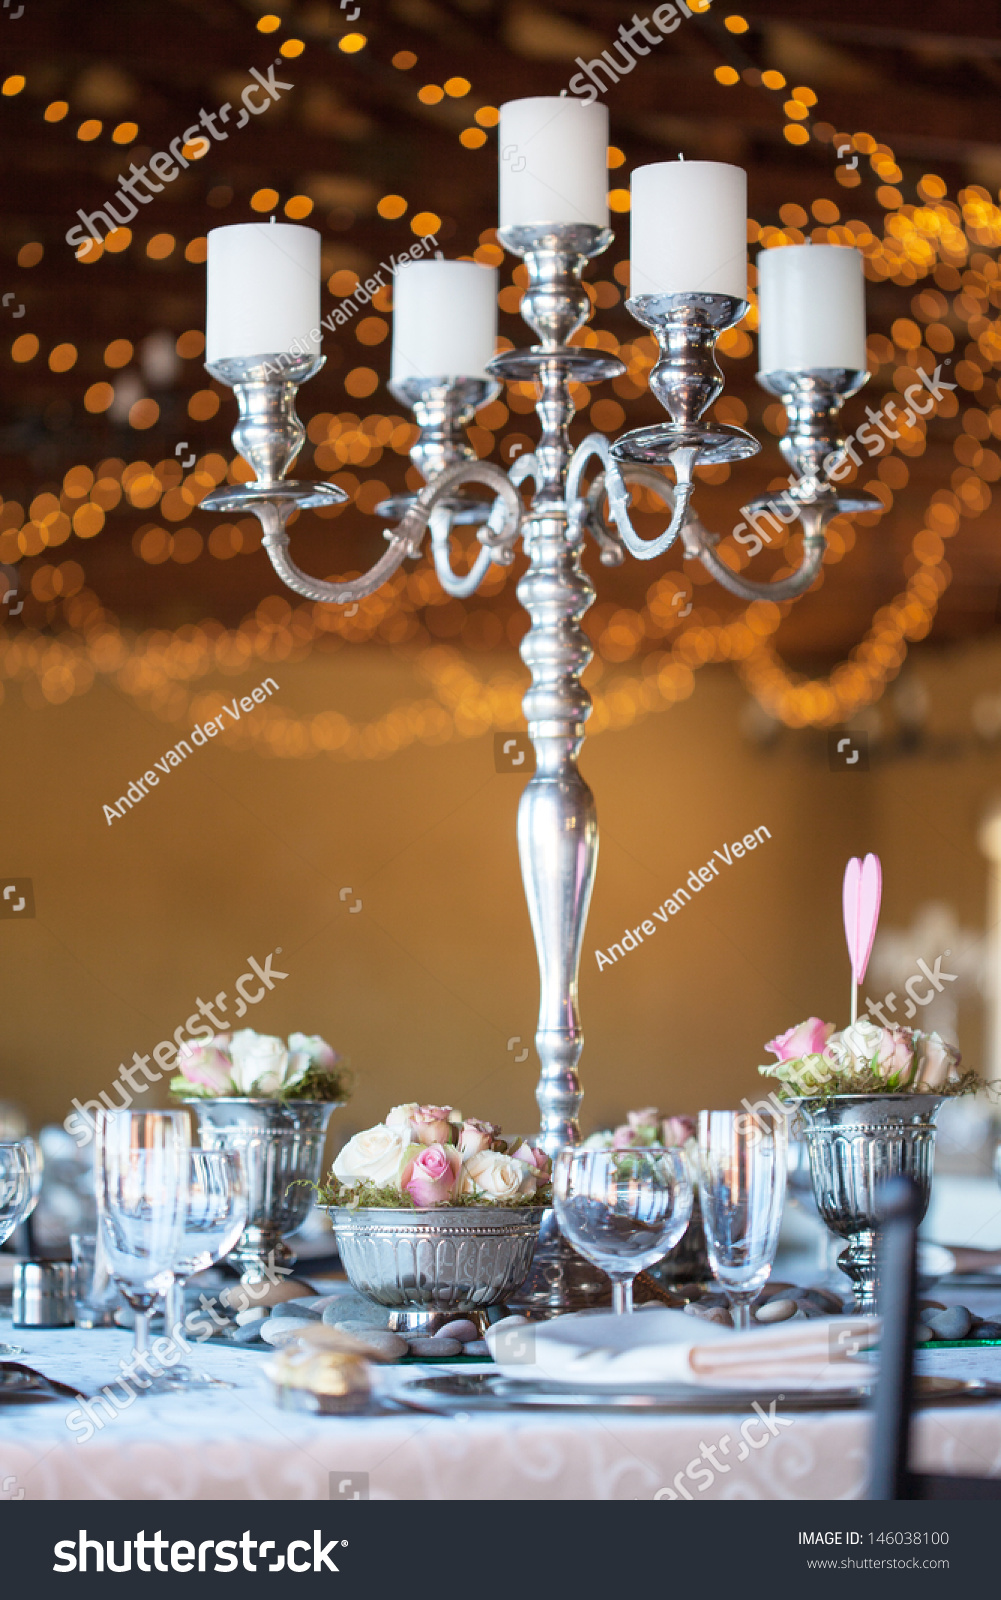 Wedding Reception Hall With Decorated Tables Selective Focus Blurred Fairy Lights In Background